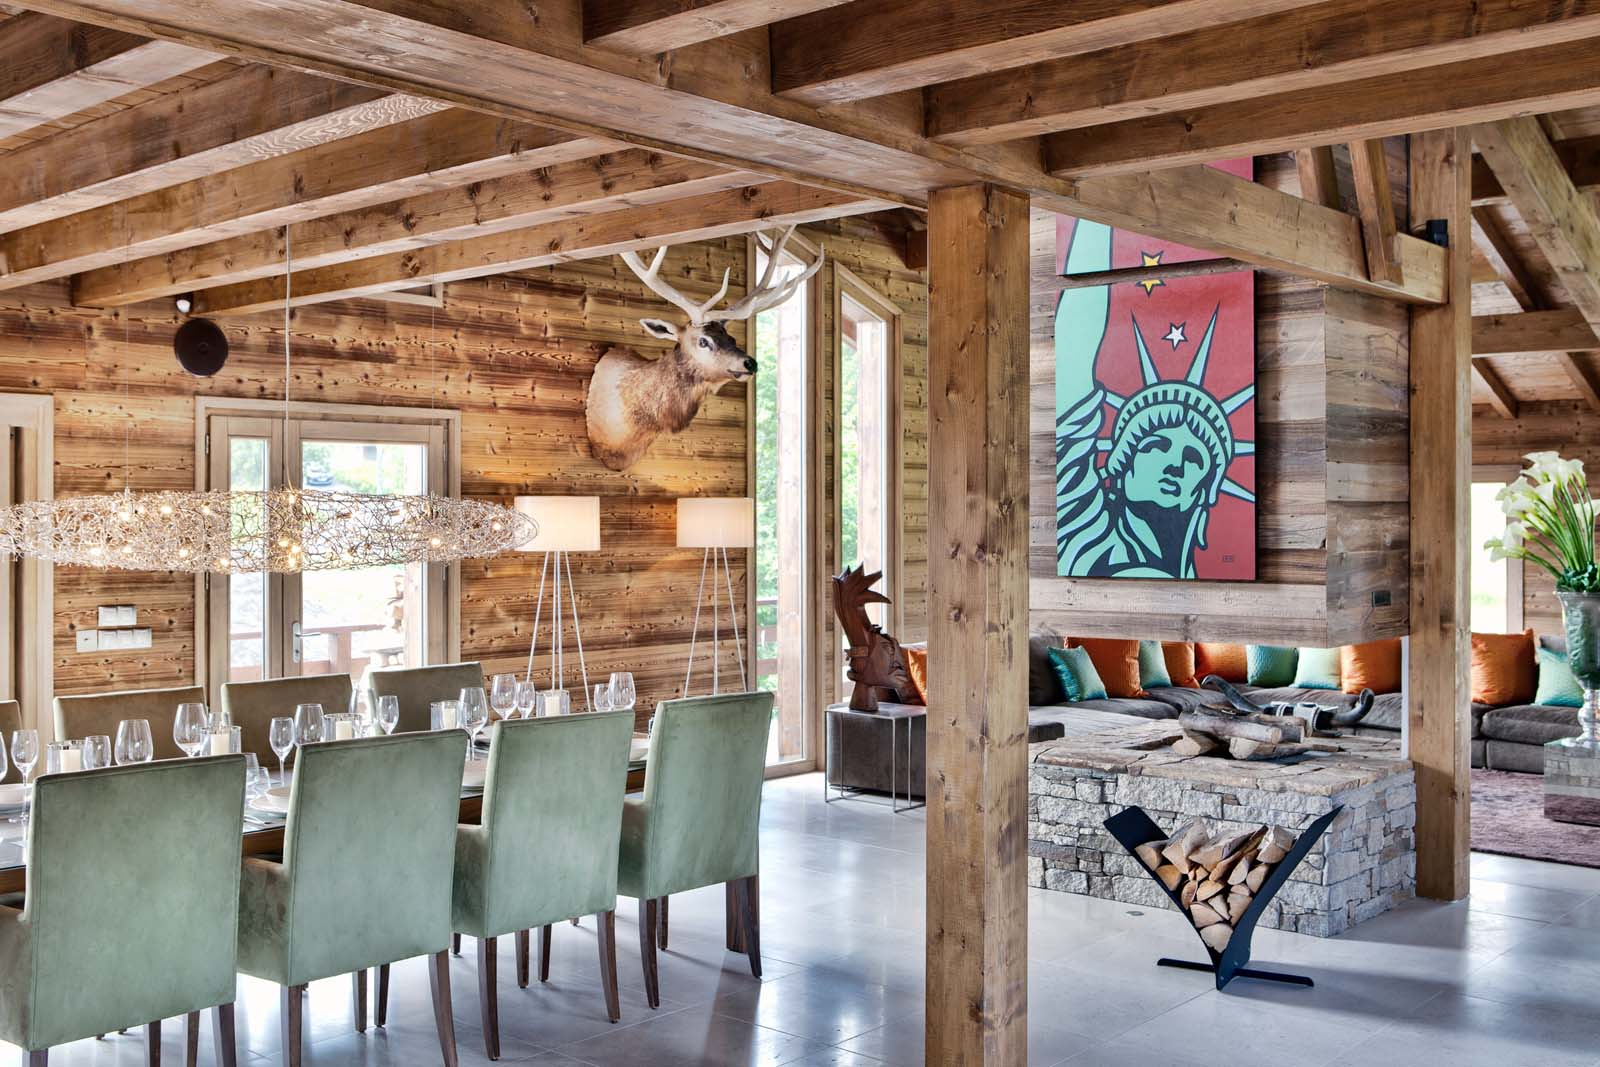 Chalet one oak in megeve by skiboutique for Deco interieur chalet montagne